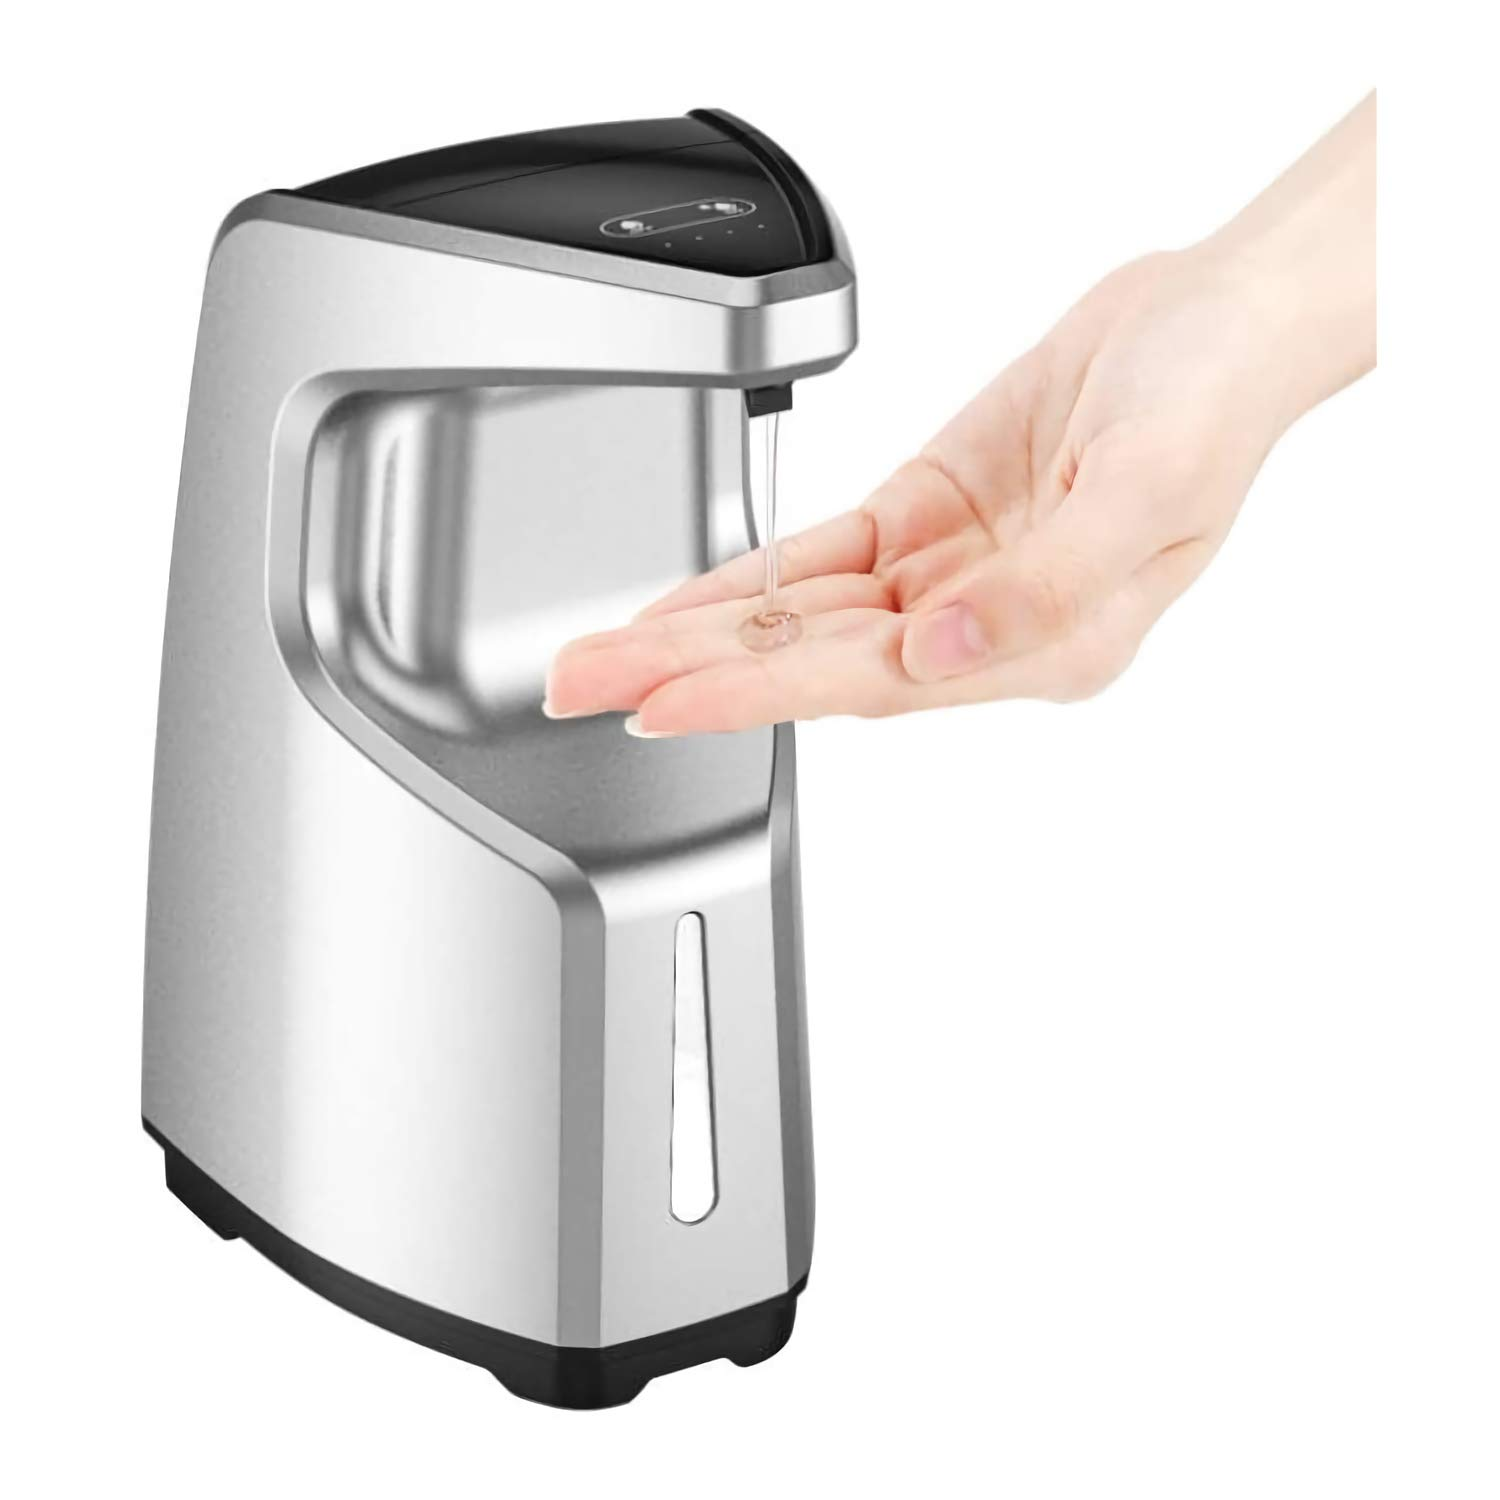 Touchless Automatic Sensor Soap Dispenser on Countertop/Wall Mounted for Kitchen/School/Hospital/Airport,SADALAK 4 Modes 450ml IPX6 Waterproof and Adjustable Volume Commercial Hand Free Soap Dispenser